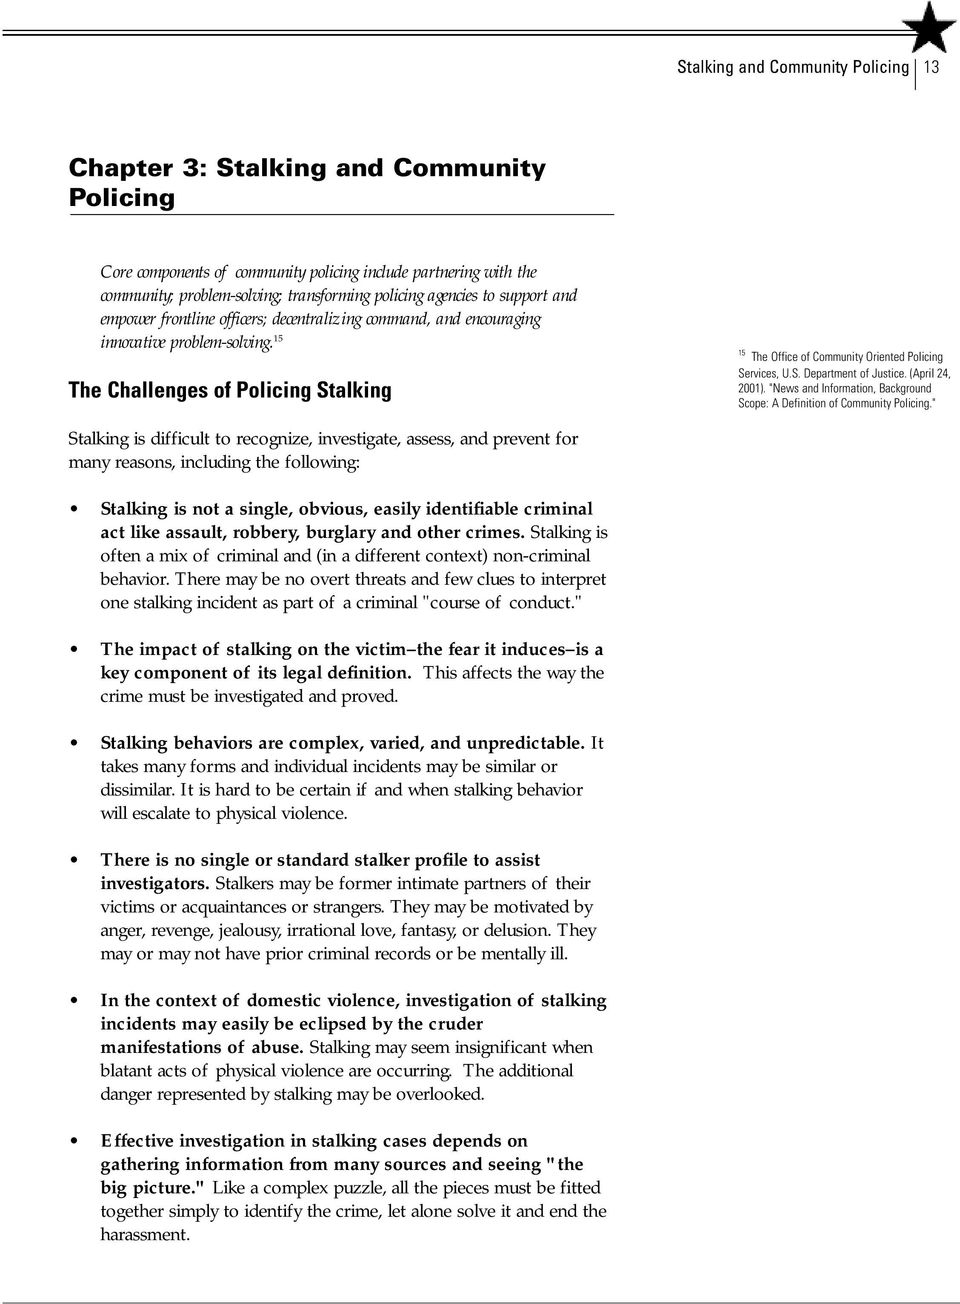 15 The Challenges of Policing Stalking 15 The Office of Community Oriented Policing Services, U.S. Department of Justice. (April 24, 2001).